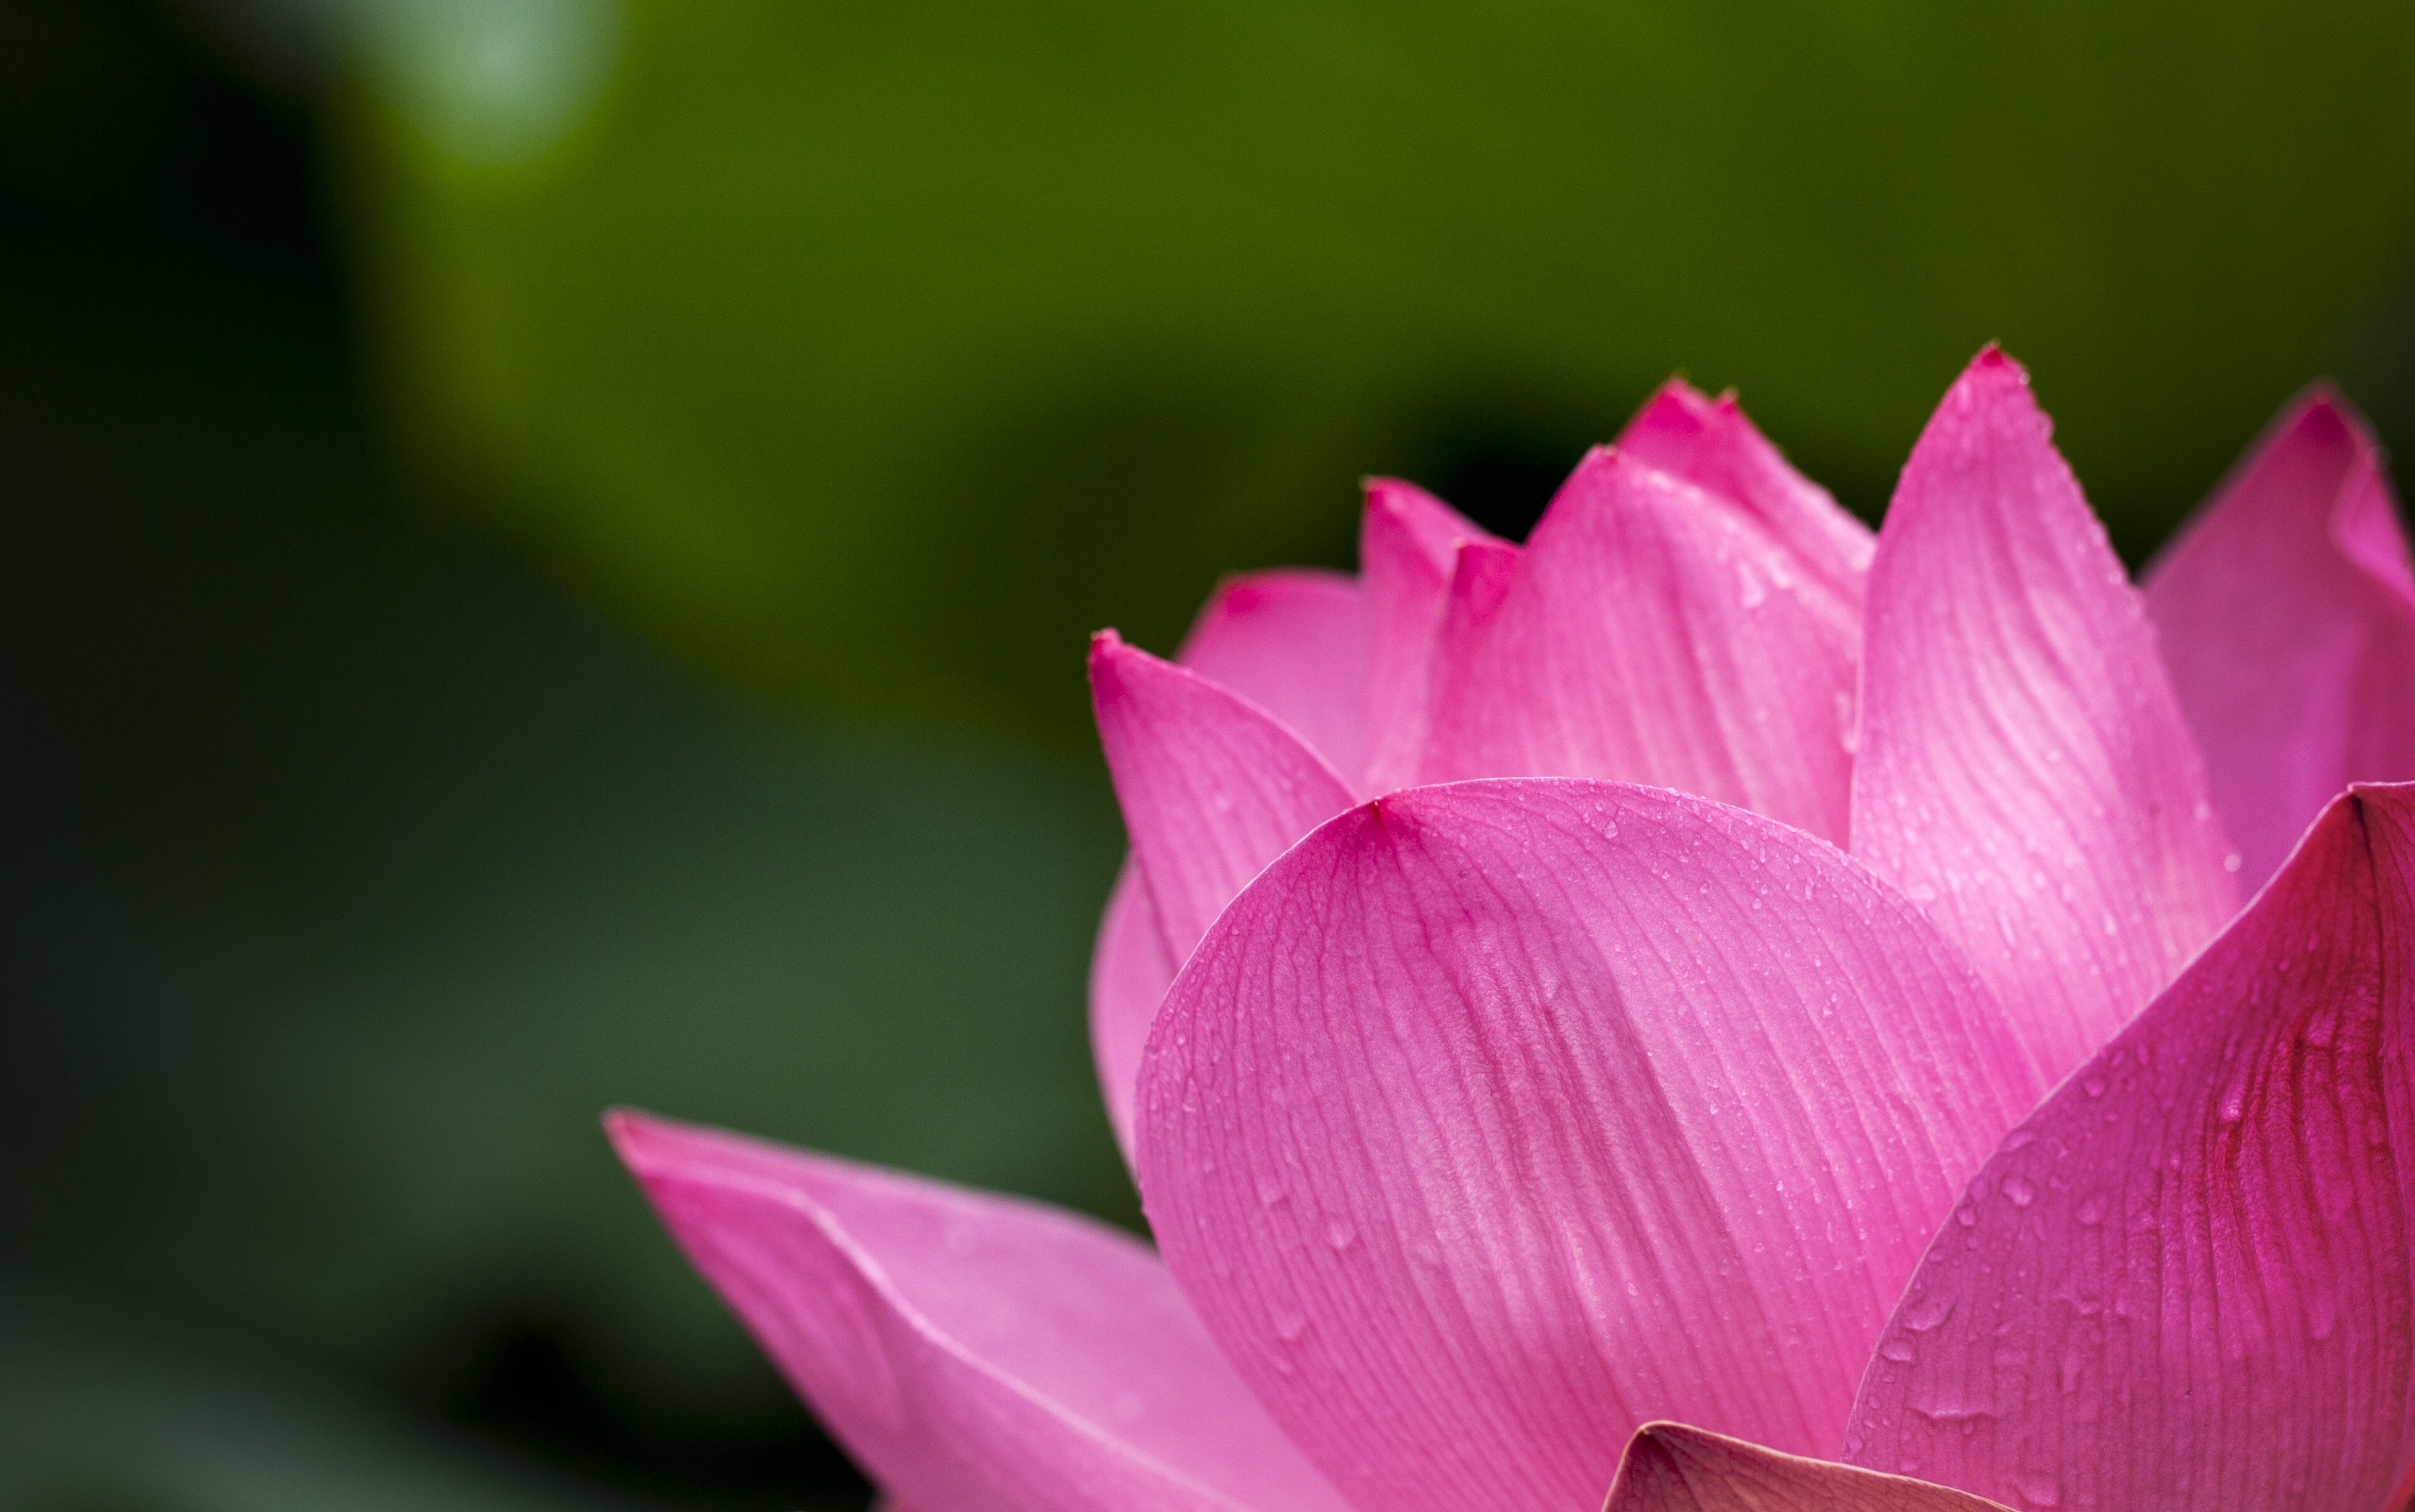 Lotus Flower Blooming during Daytime